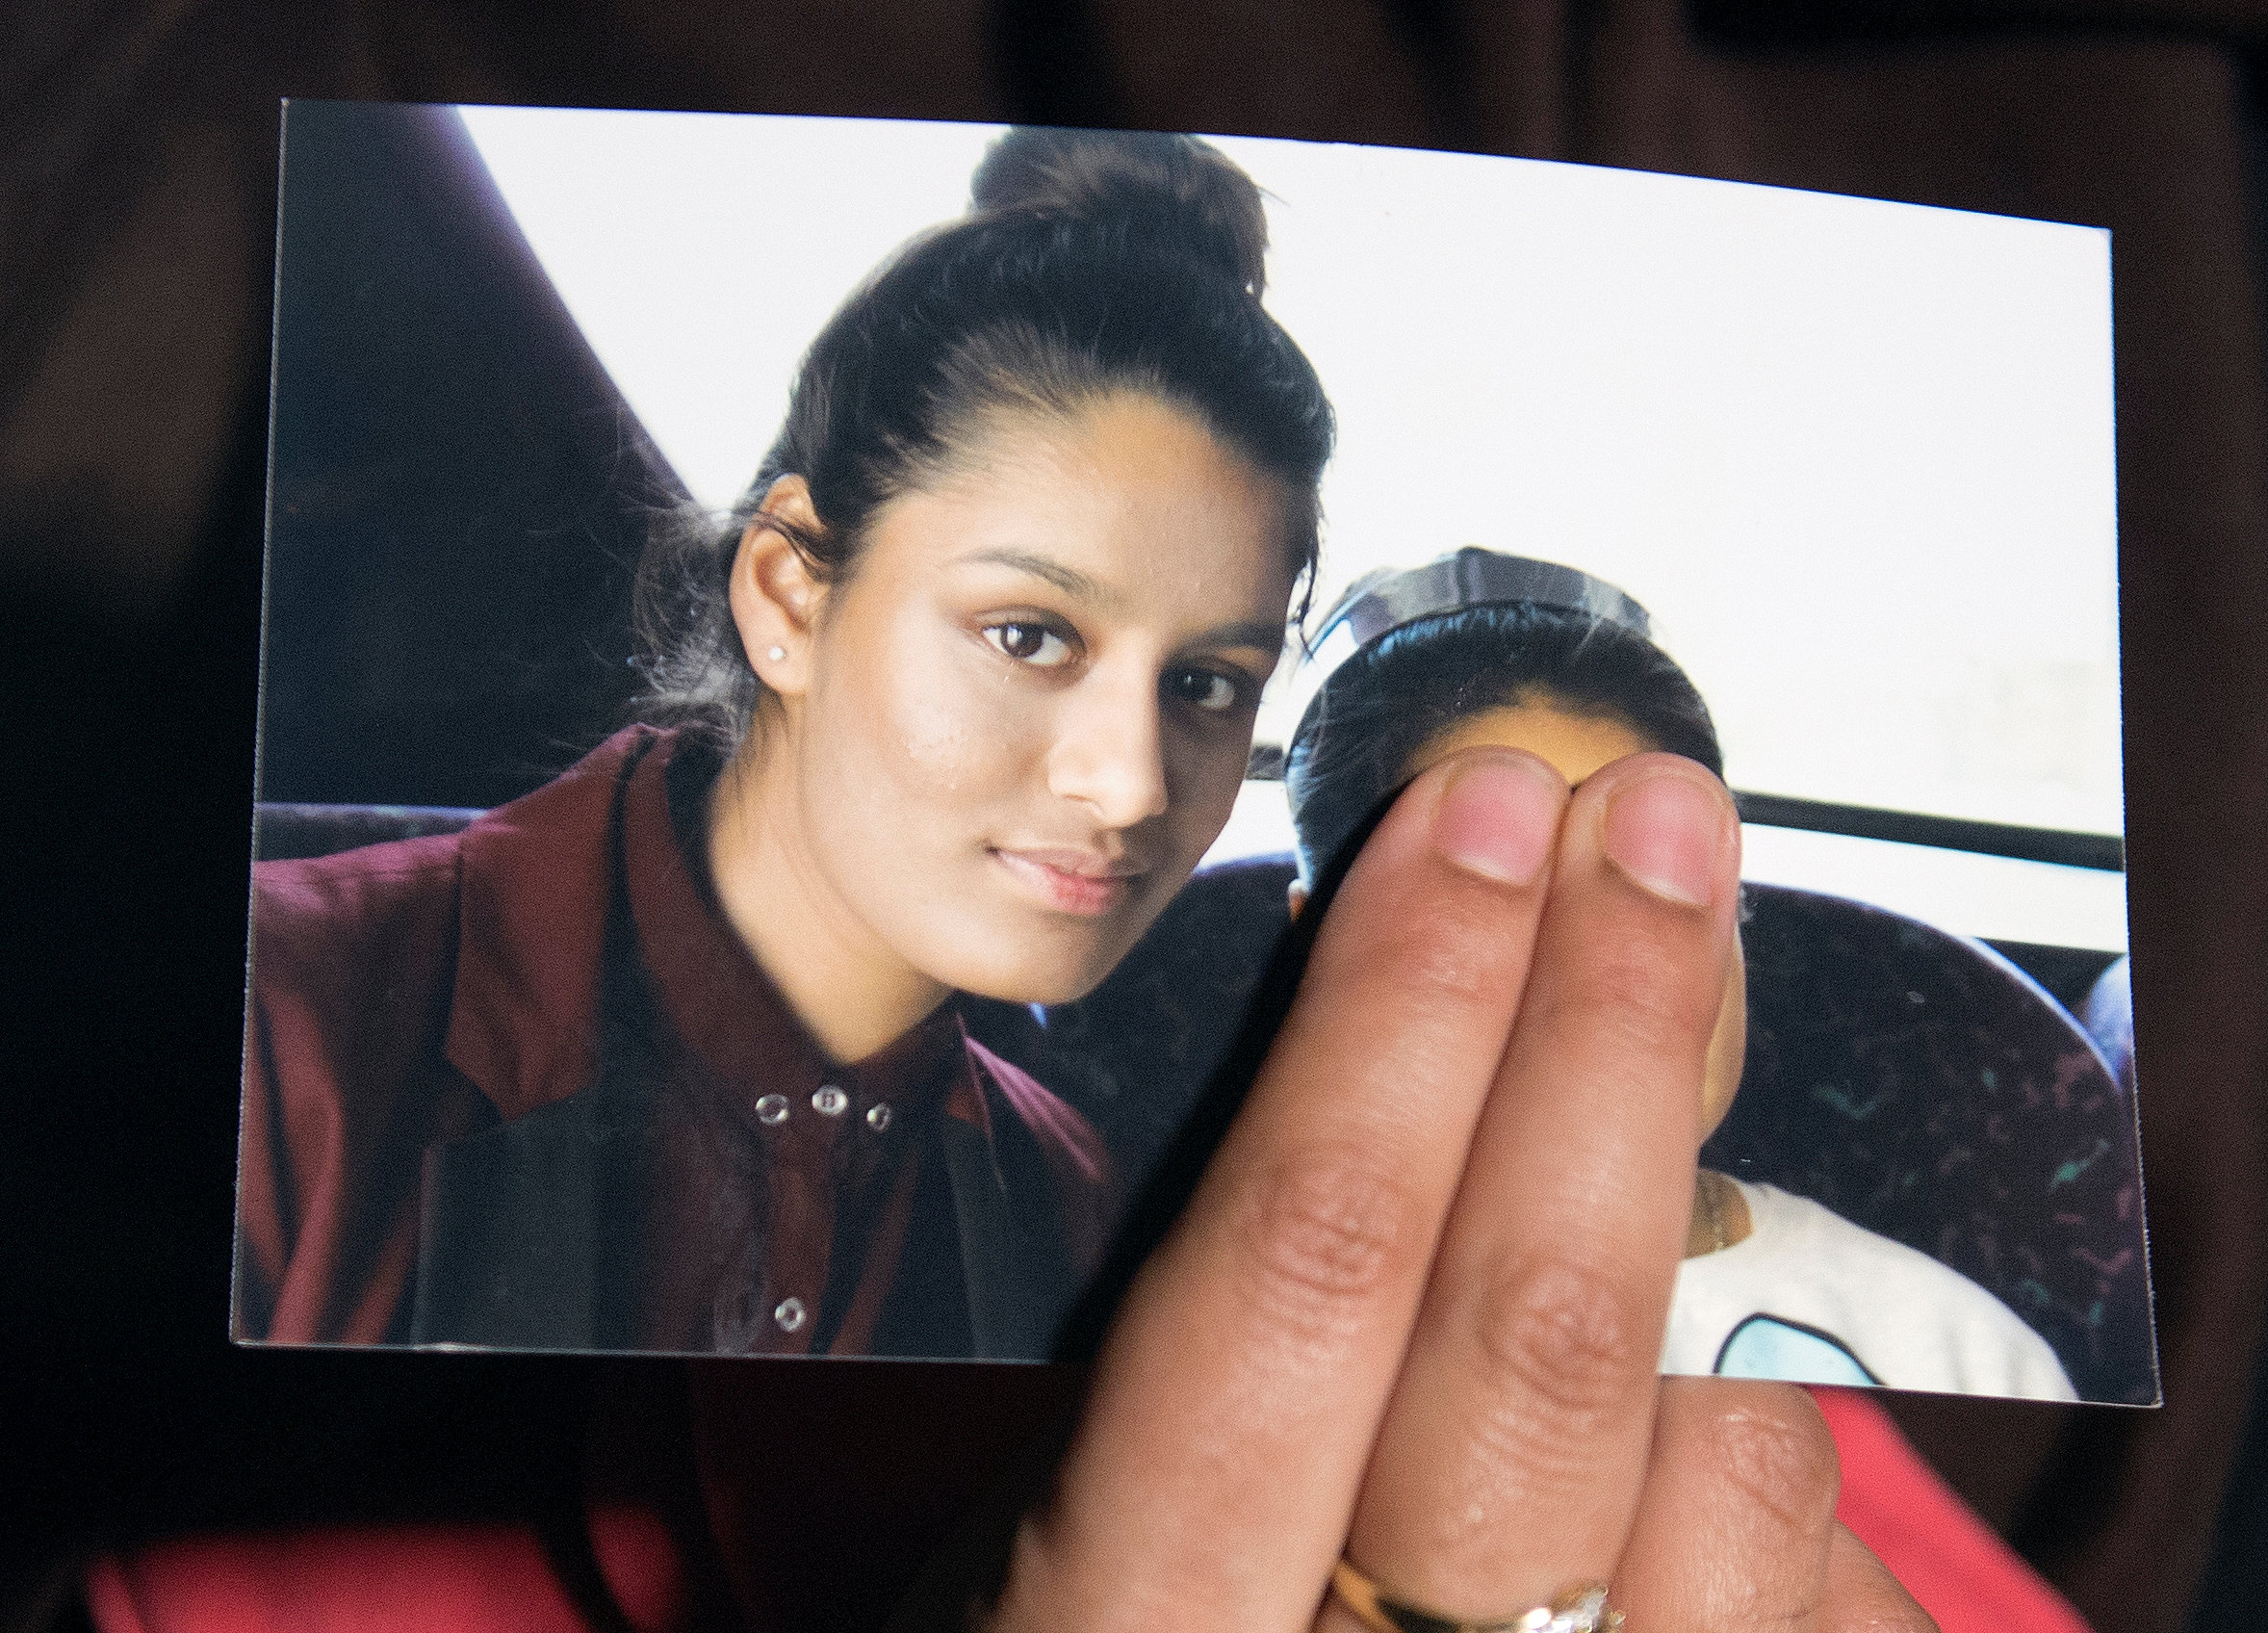 Family of IS teen to fight UK decision to strip citizenship